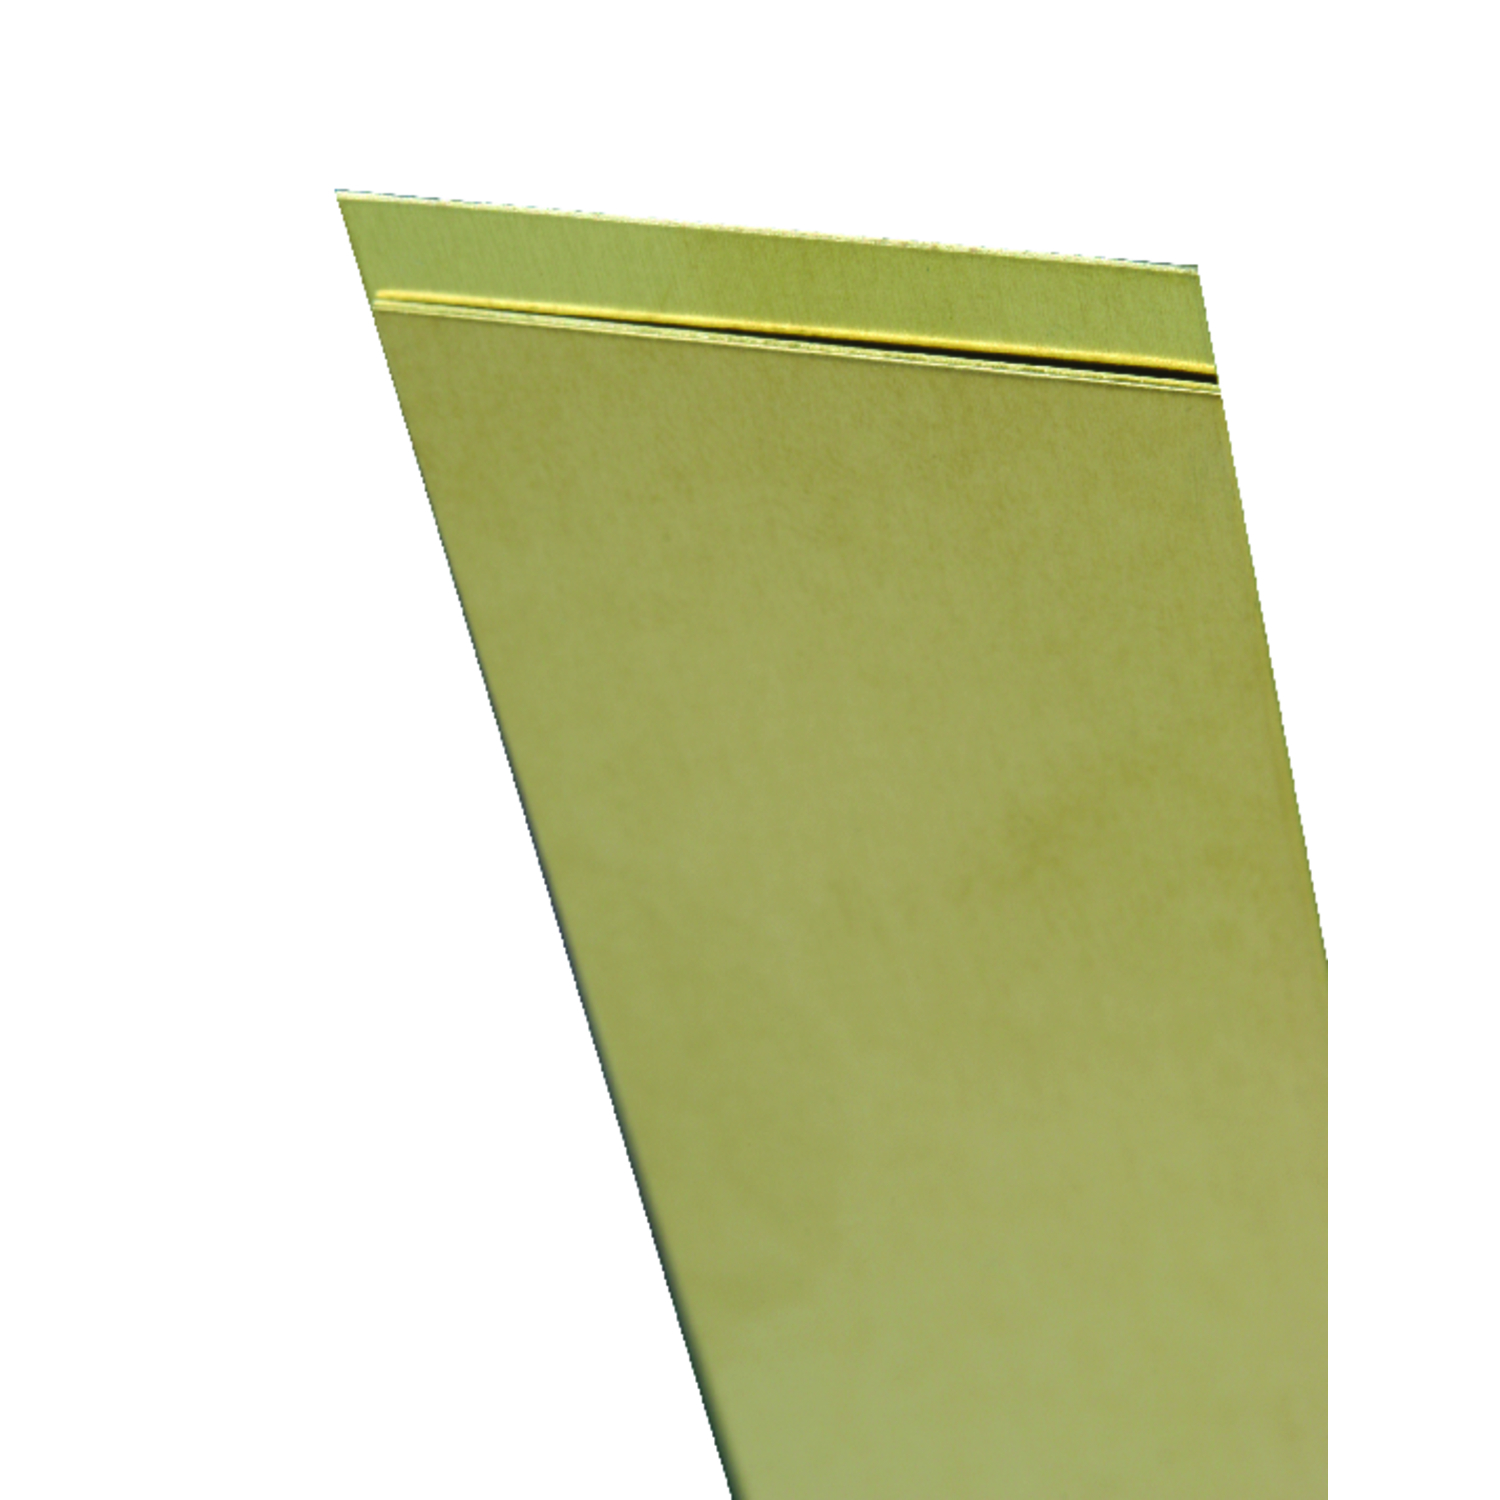 K&S  0.032 in.  x 1 in. W x 12 in. L Brass  Metal Strips